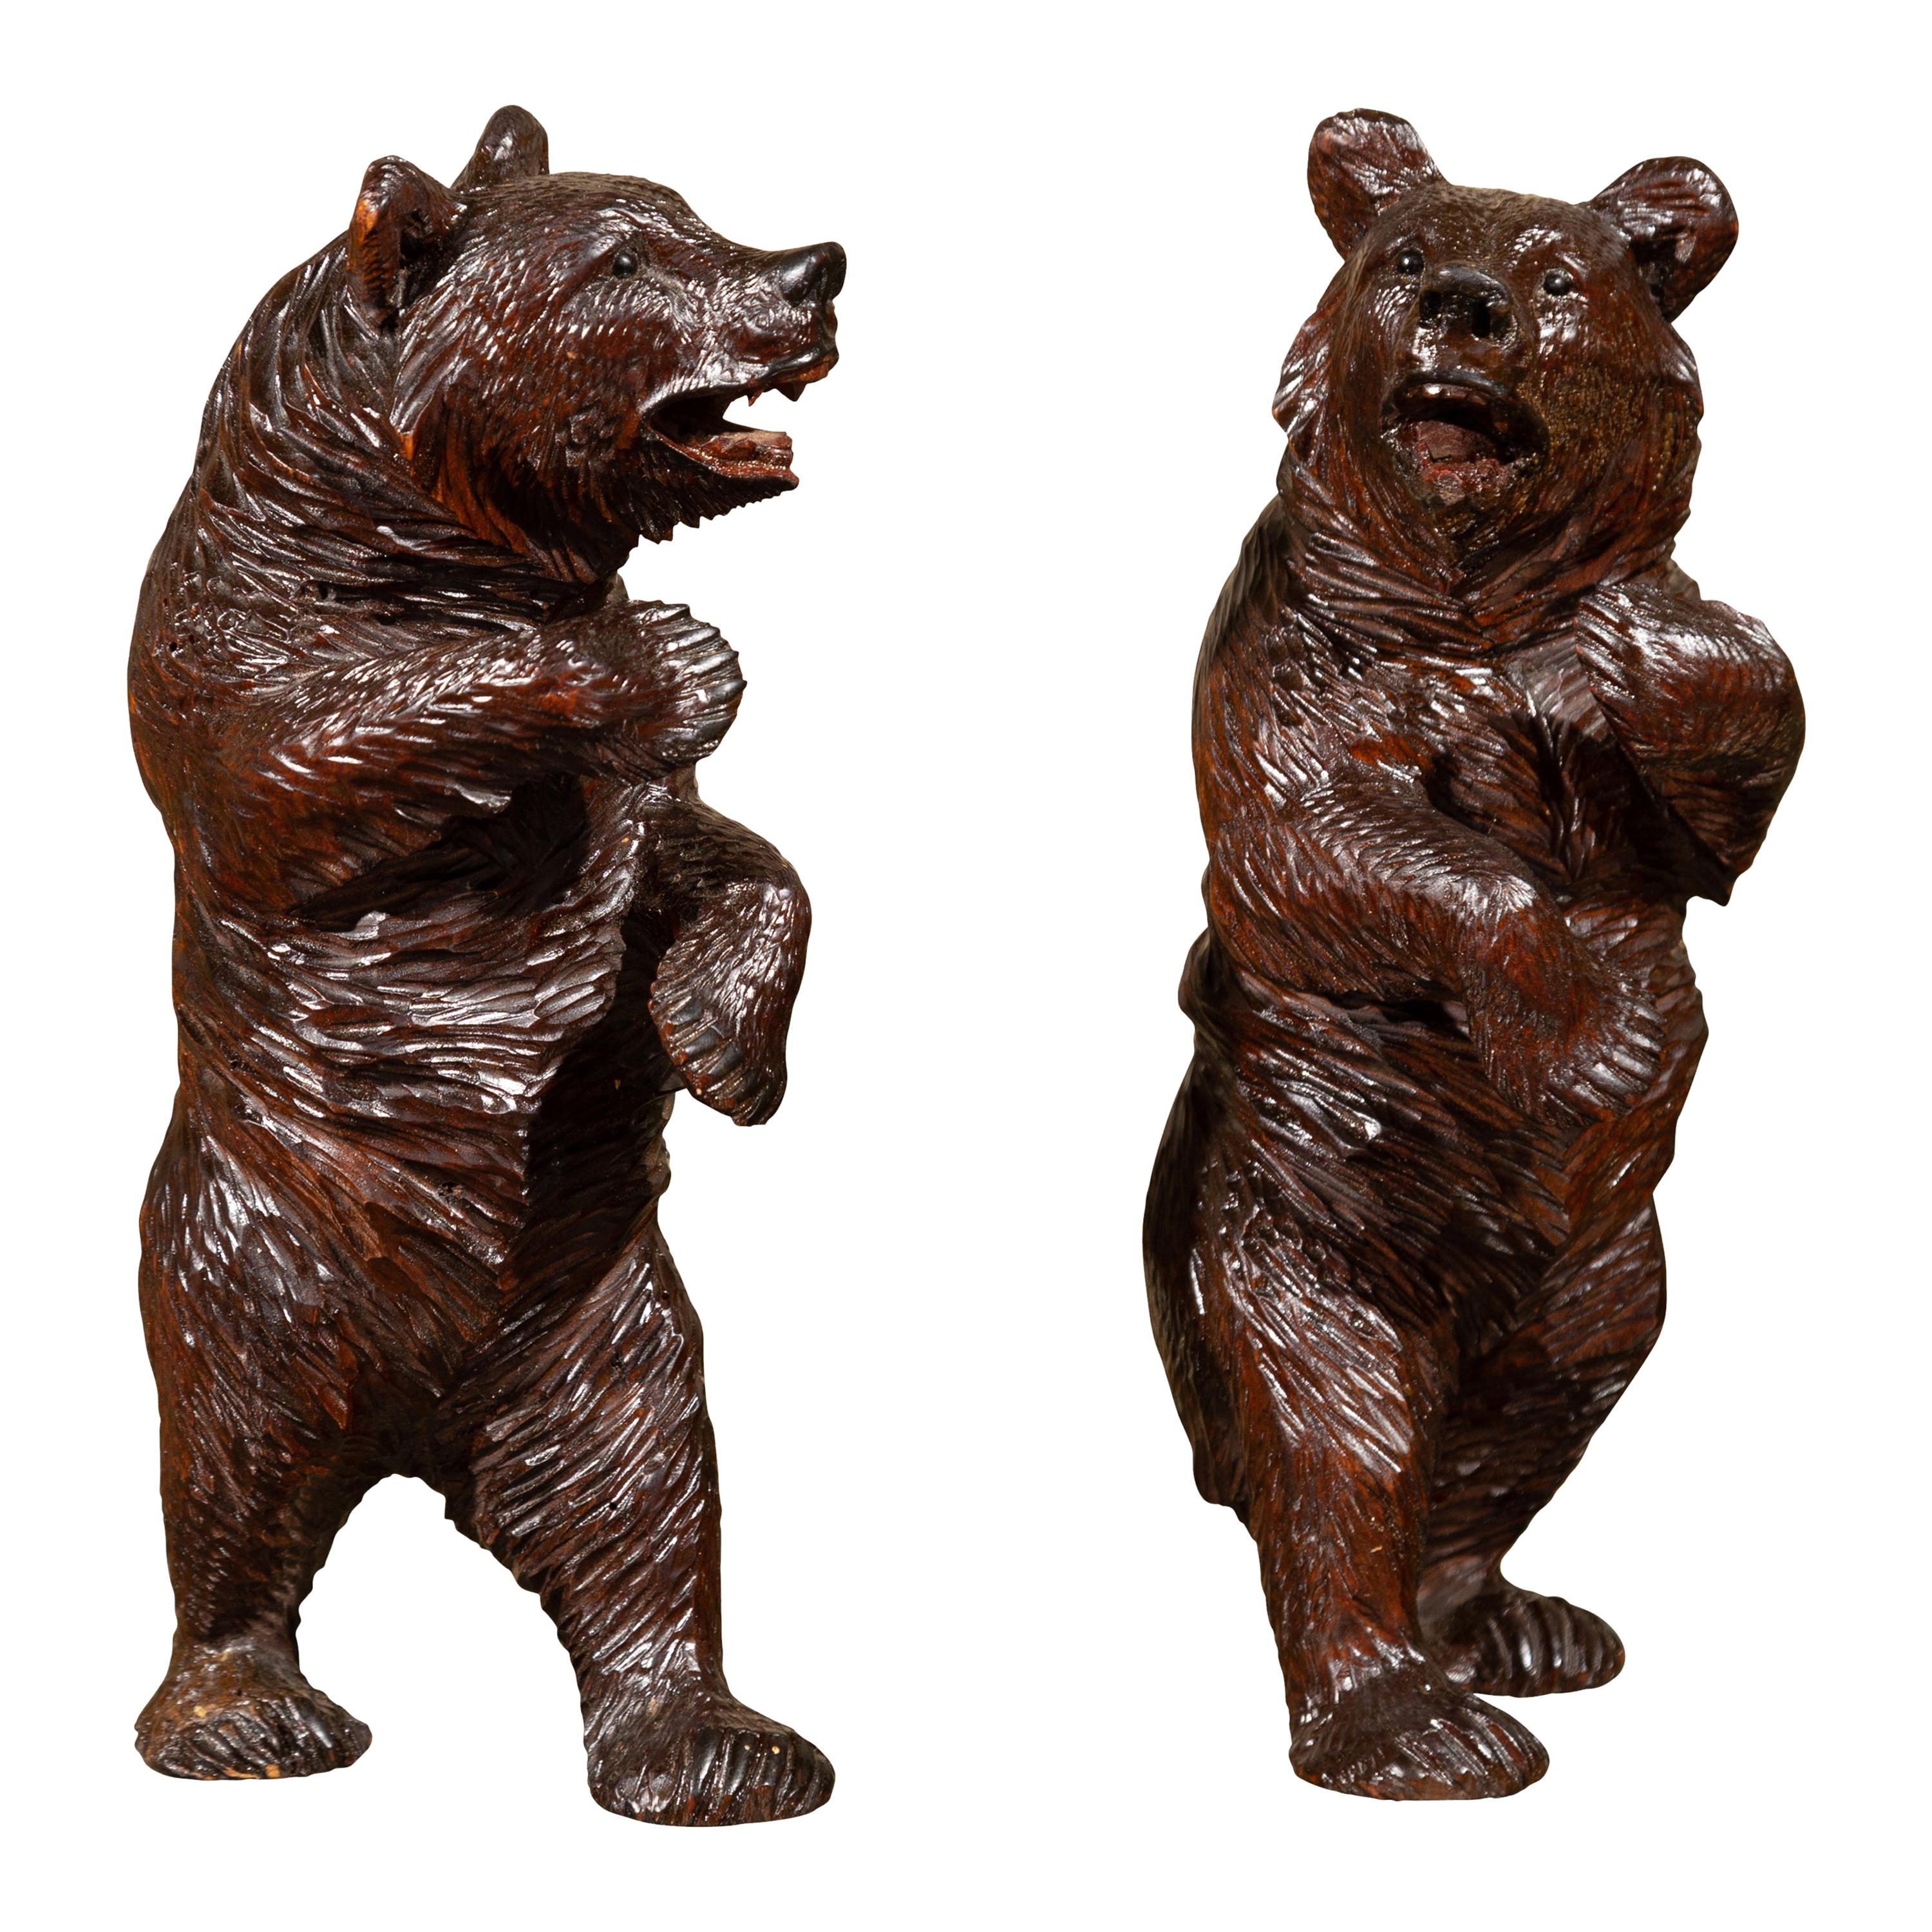 Small Pair of Black Forest Carved Wooden Bears in Standing Position, circa 1900